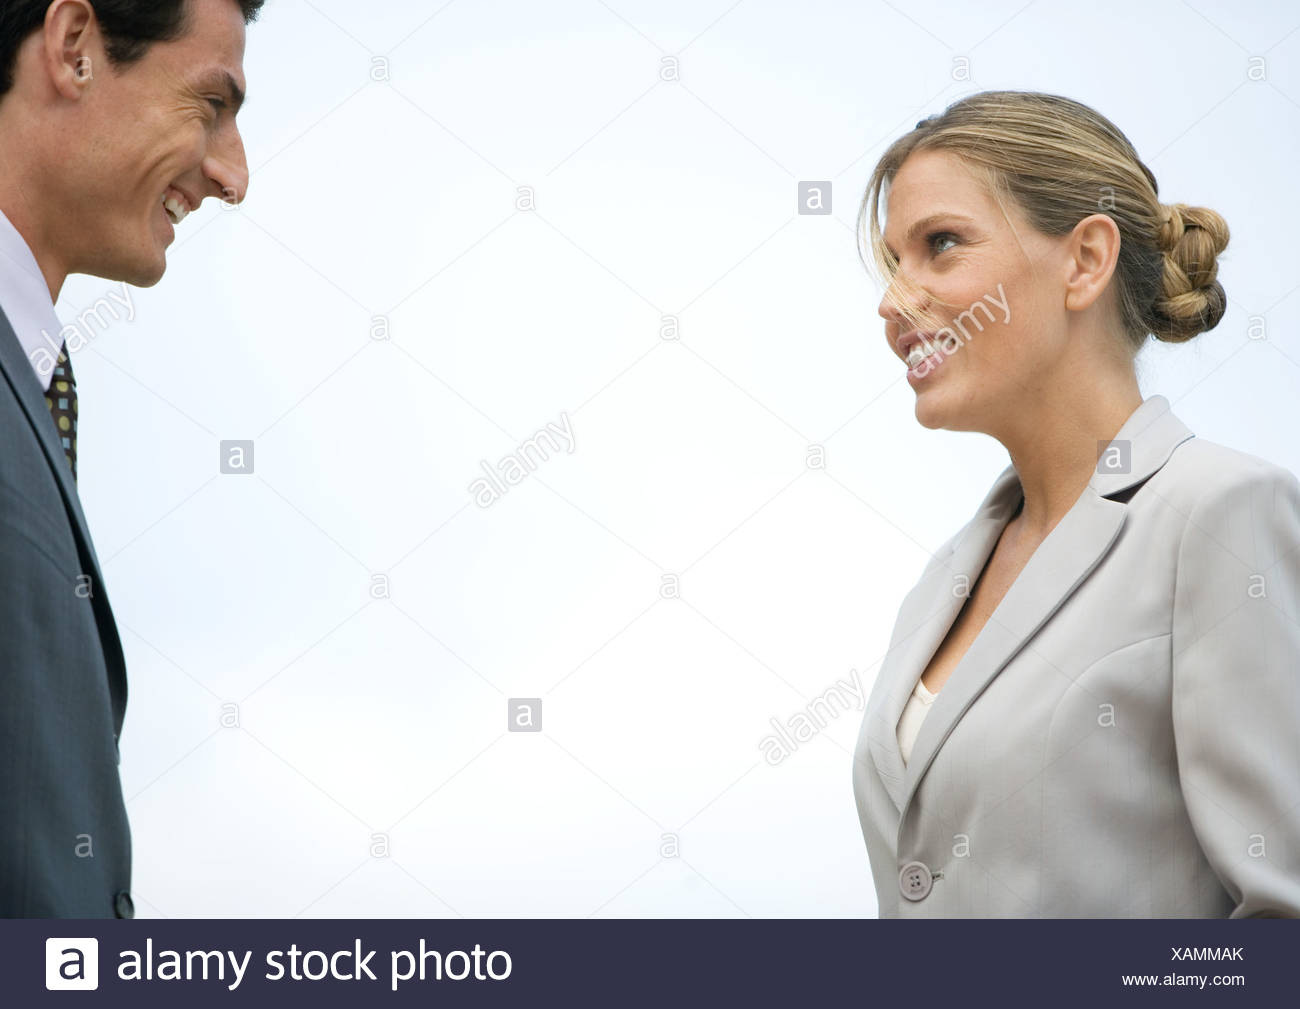 Businesswoman and businessman smiling at each other - Stock Image